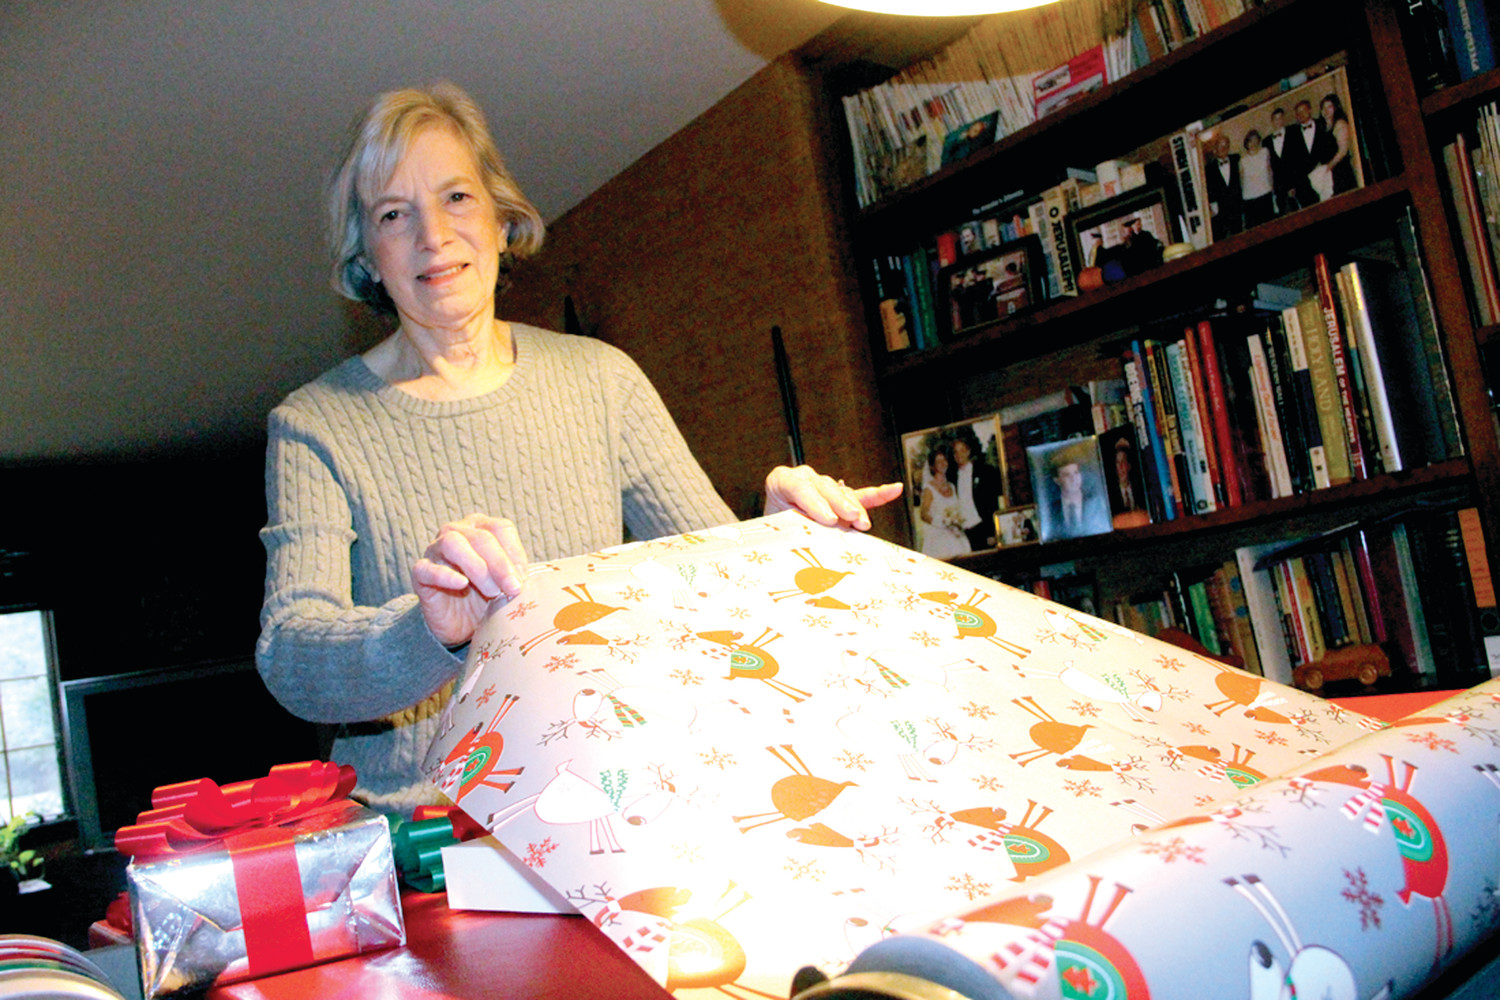 Judy Silverman has been gift wrap chairperson for 12 years with the RI Hadassah.